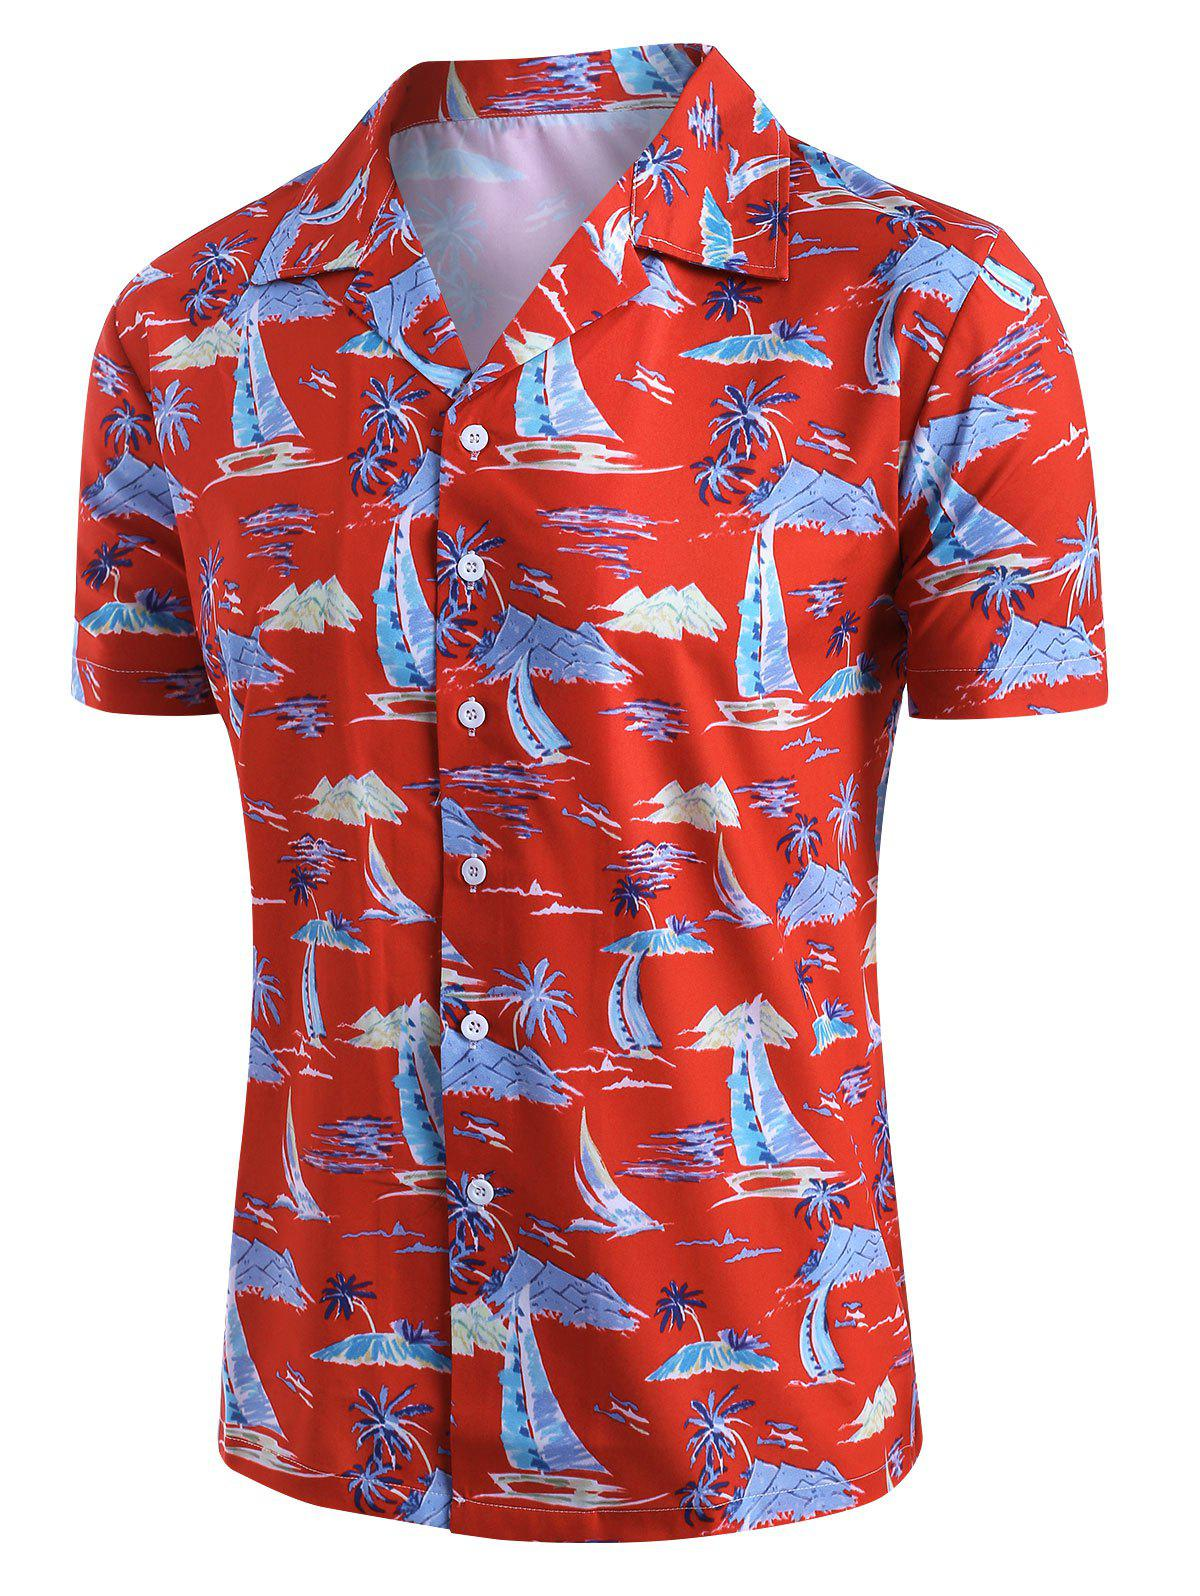 Palm Tree Sailboat Print Button Up Hawaii Shirt - multicolor S